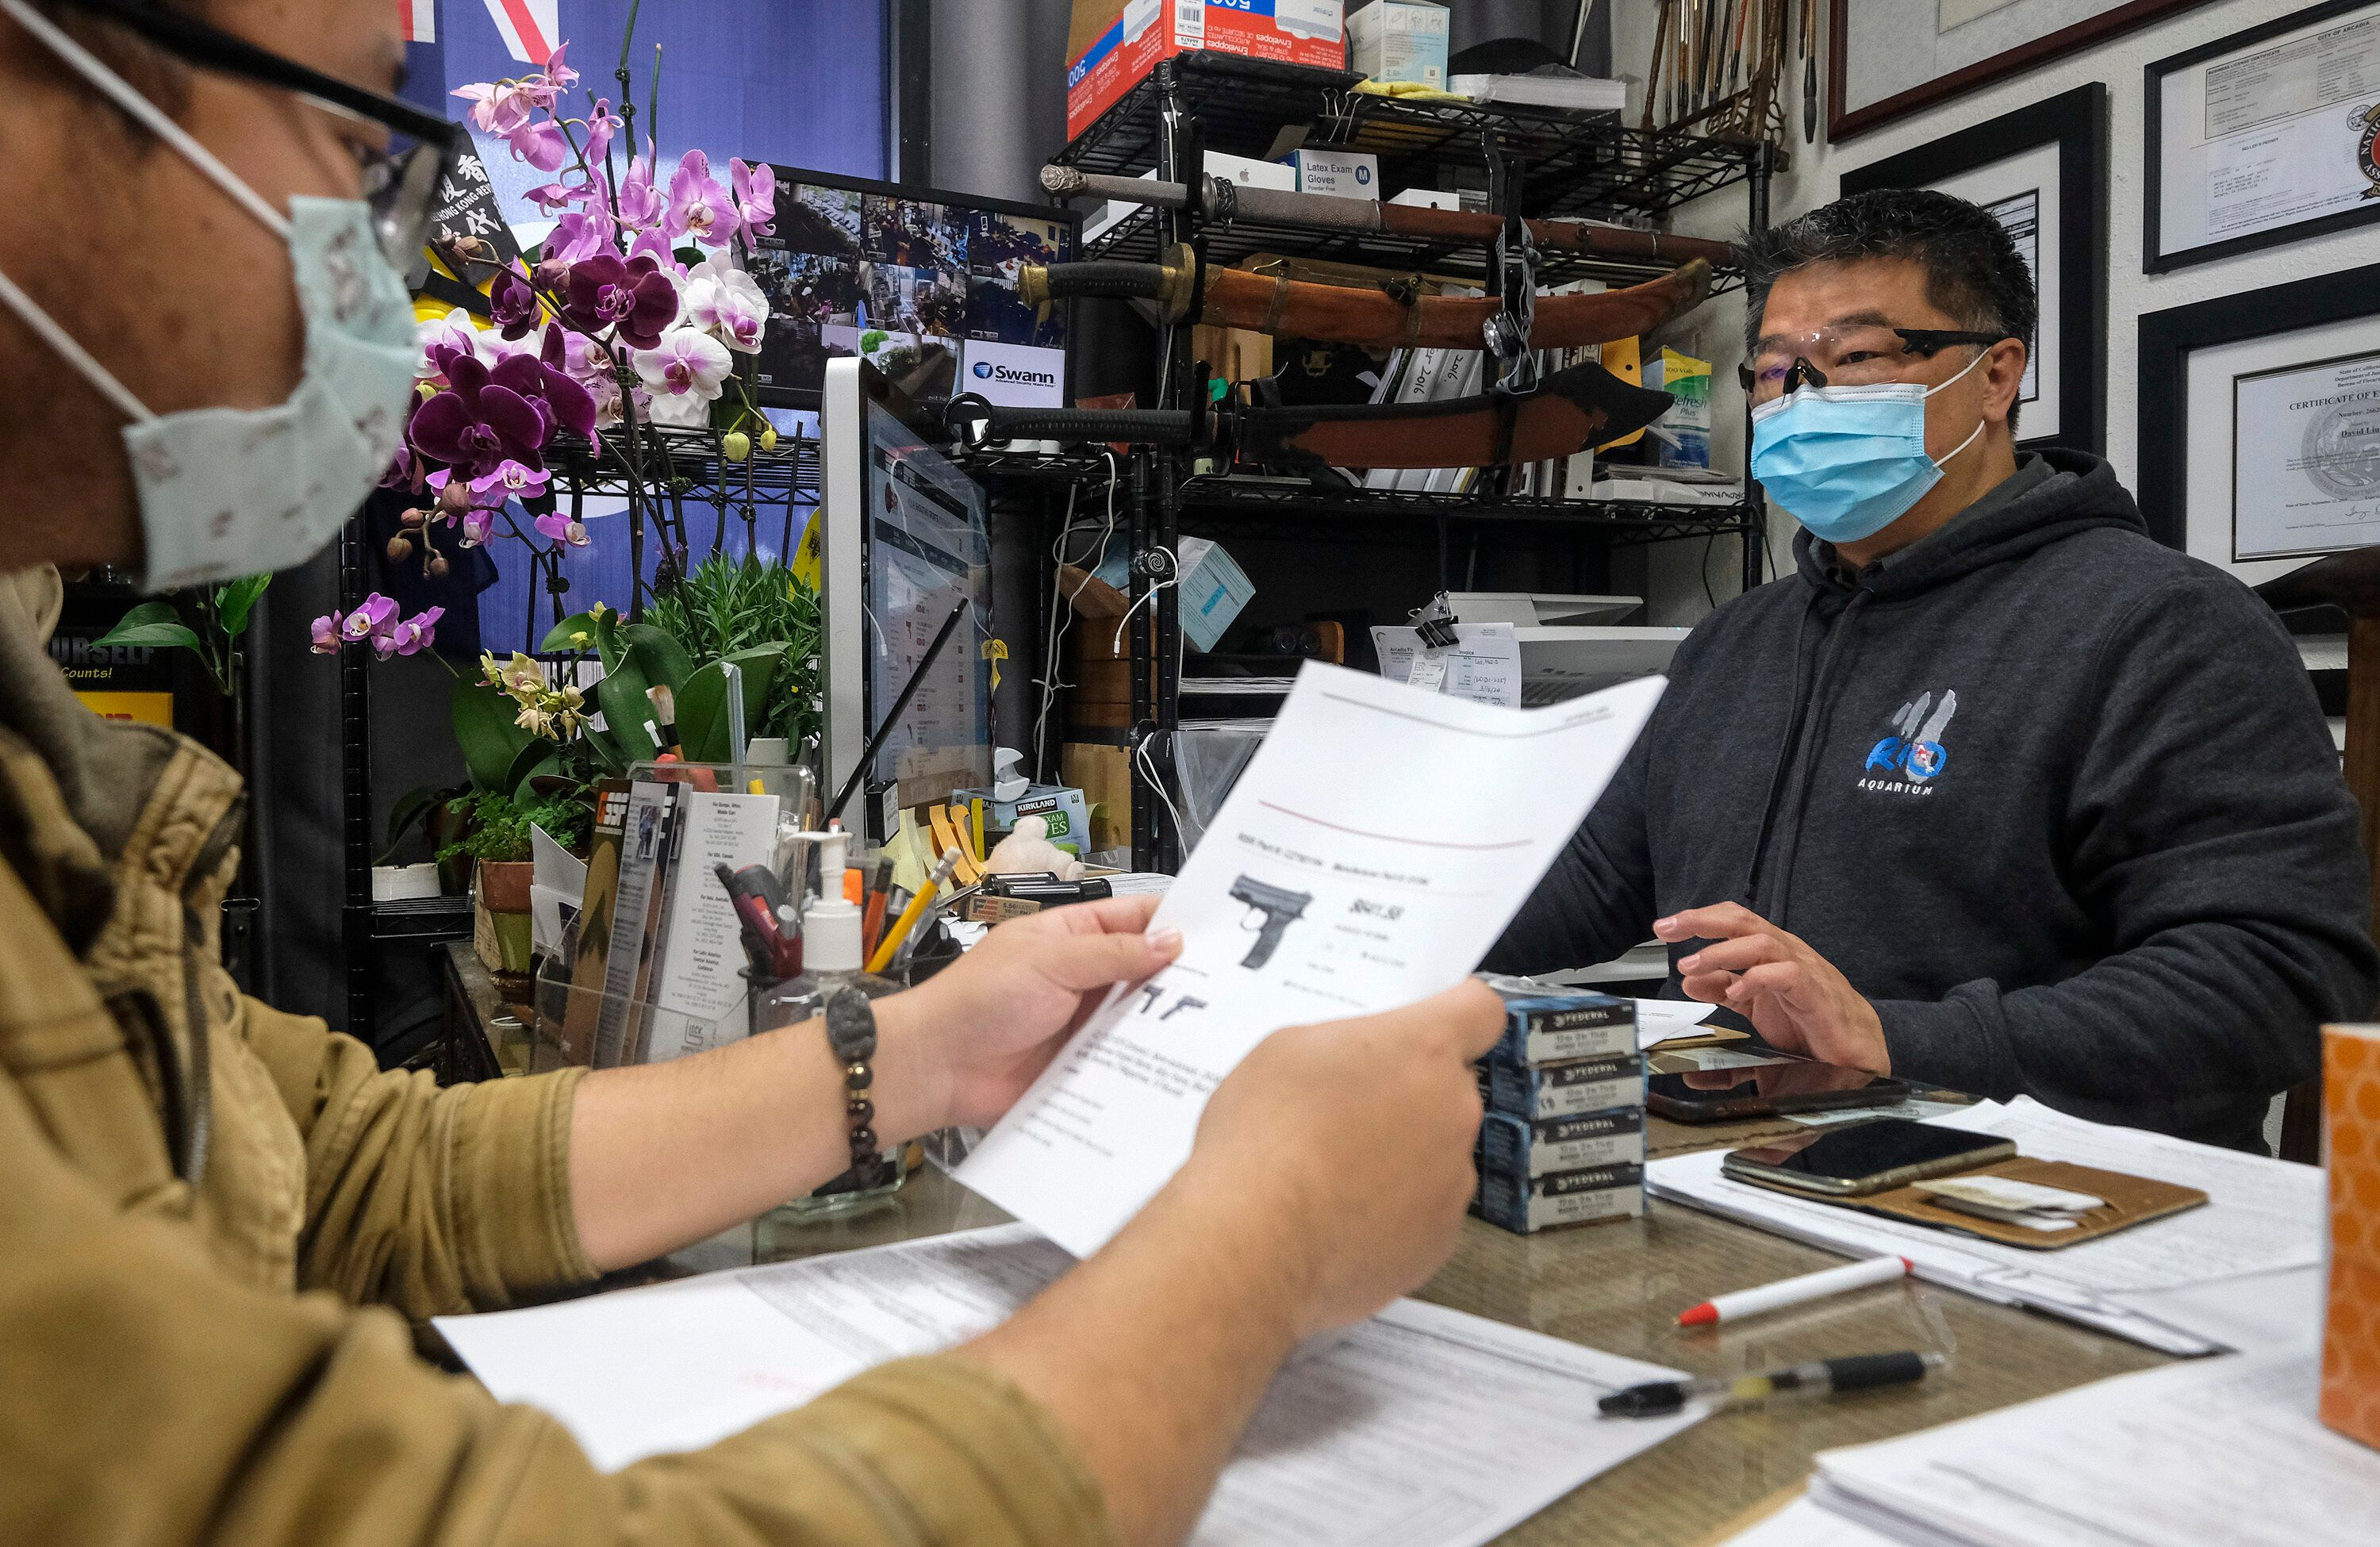 David Liu, right, owner of a gun store, takes an order from a customer in Arcadia, Calif., Sunday, March 15, 2020.